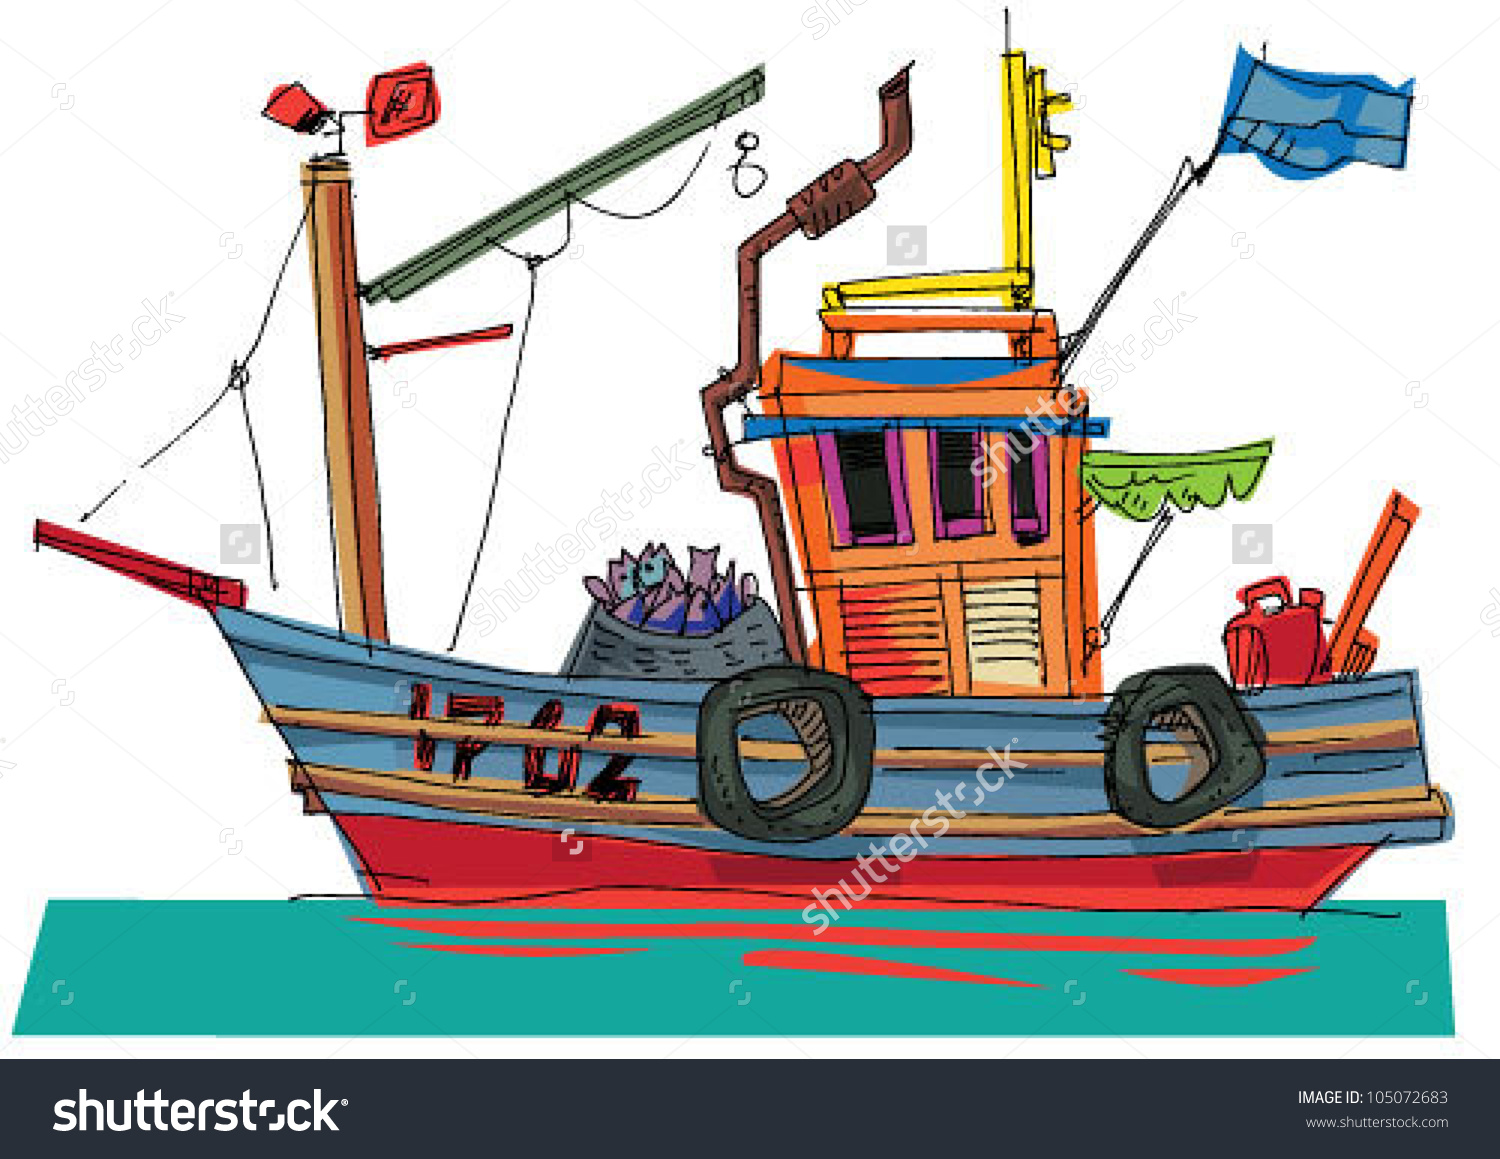 Fishboat Cartoon Caricature Stock Vector 105072683.